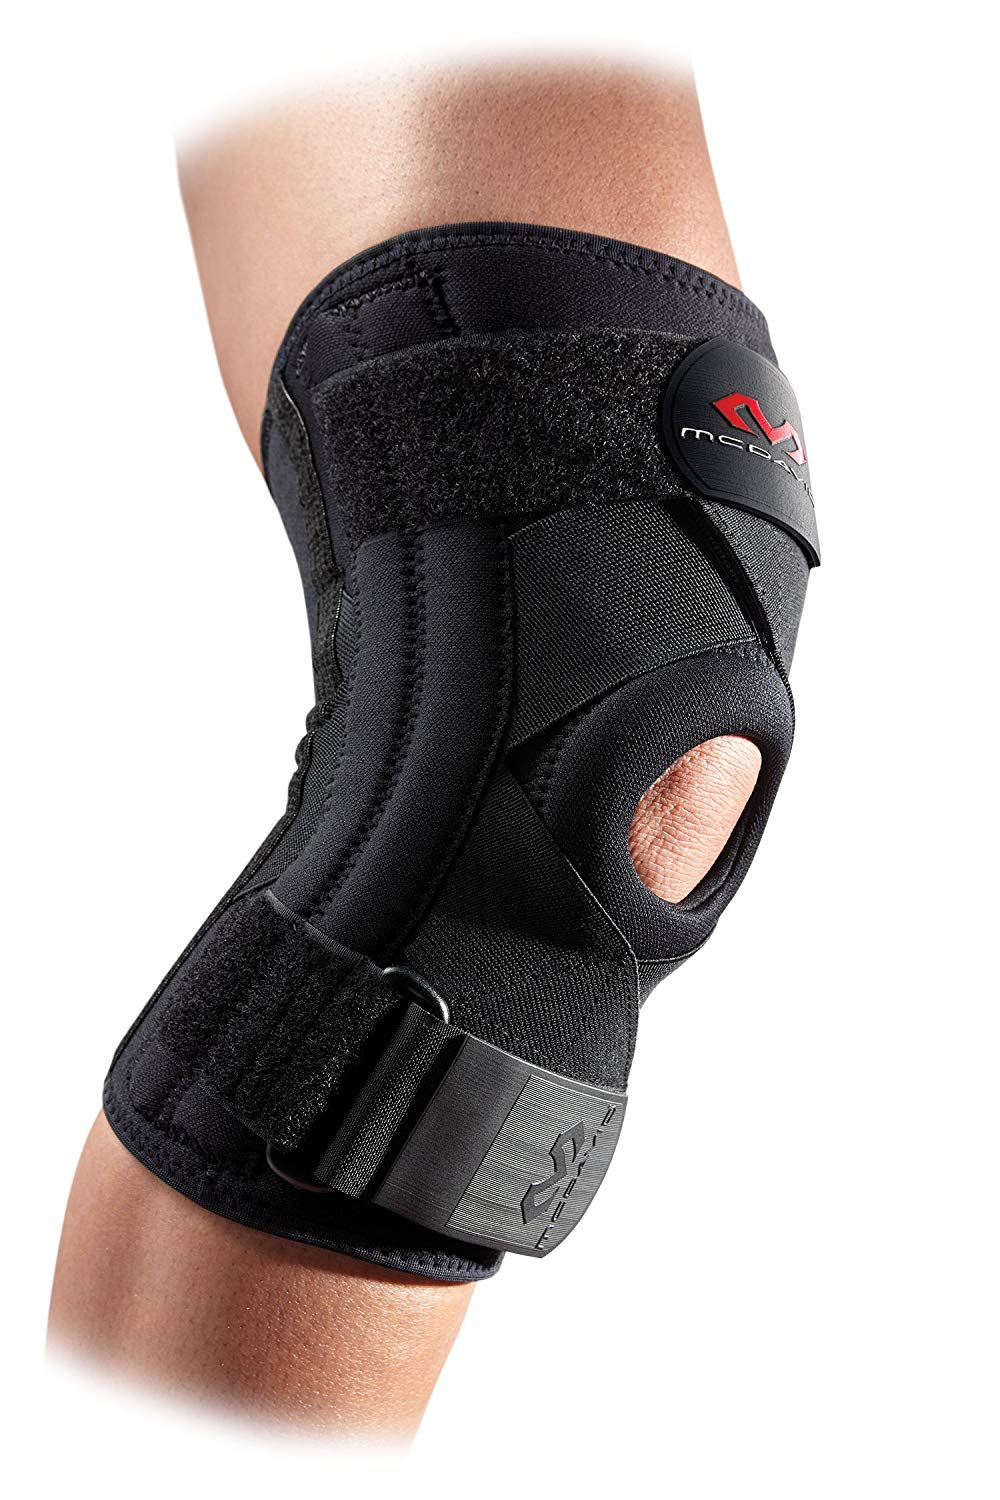 best knee brace for rugby players, best knee support for rugby